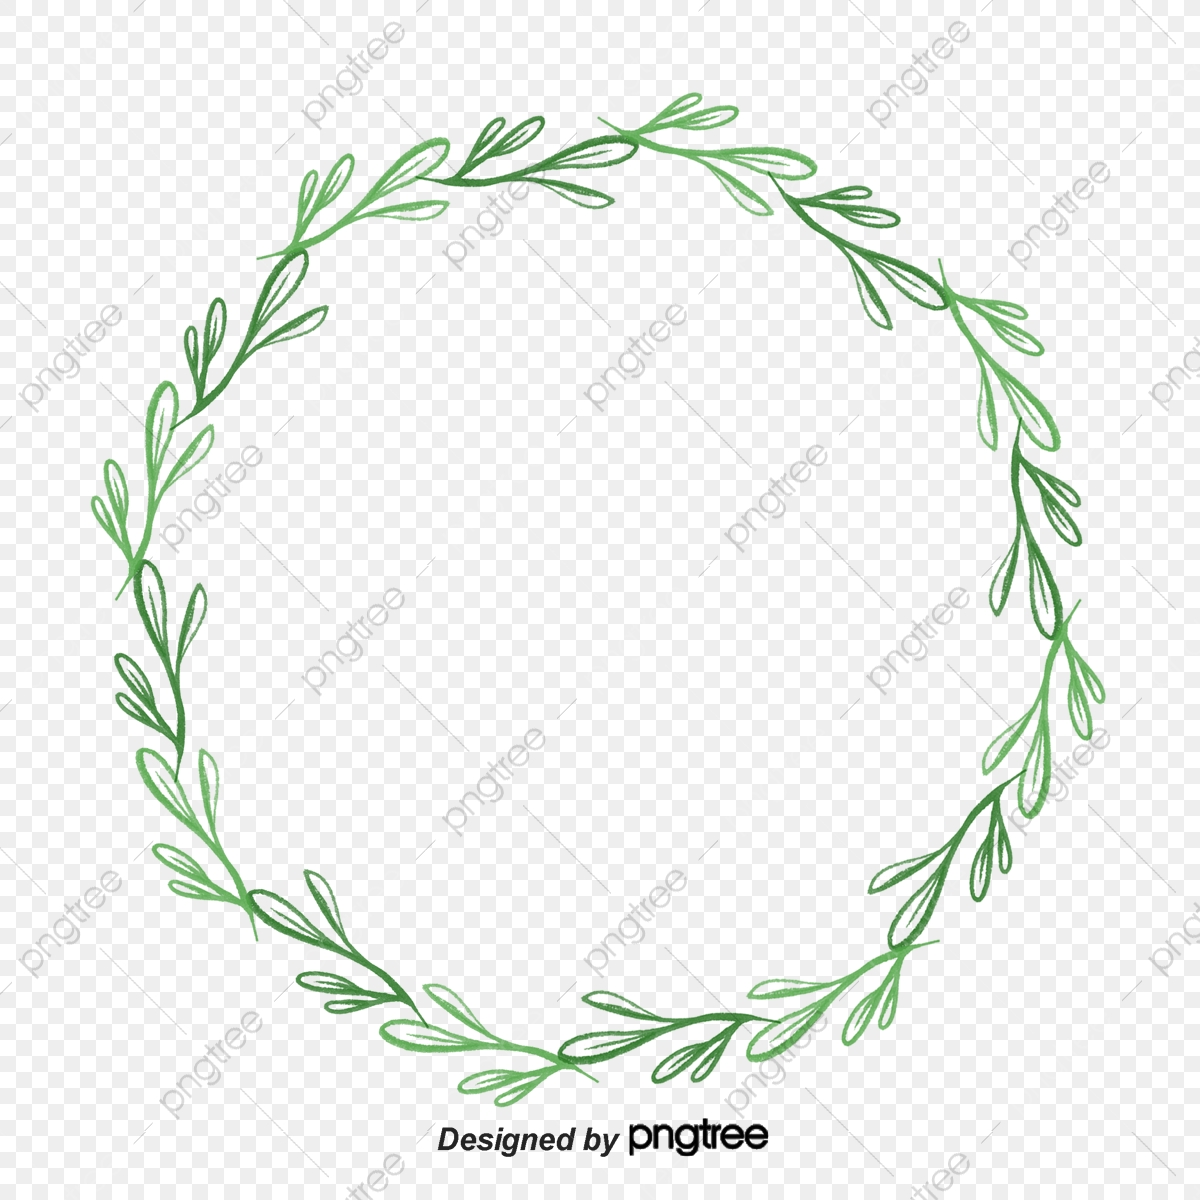 Green Leaf Garland, Green, Leaf, Wreath PNG Transparent.